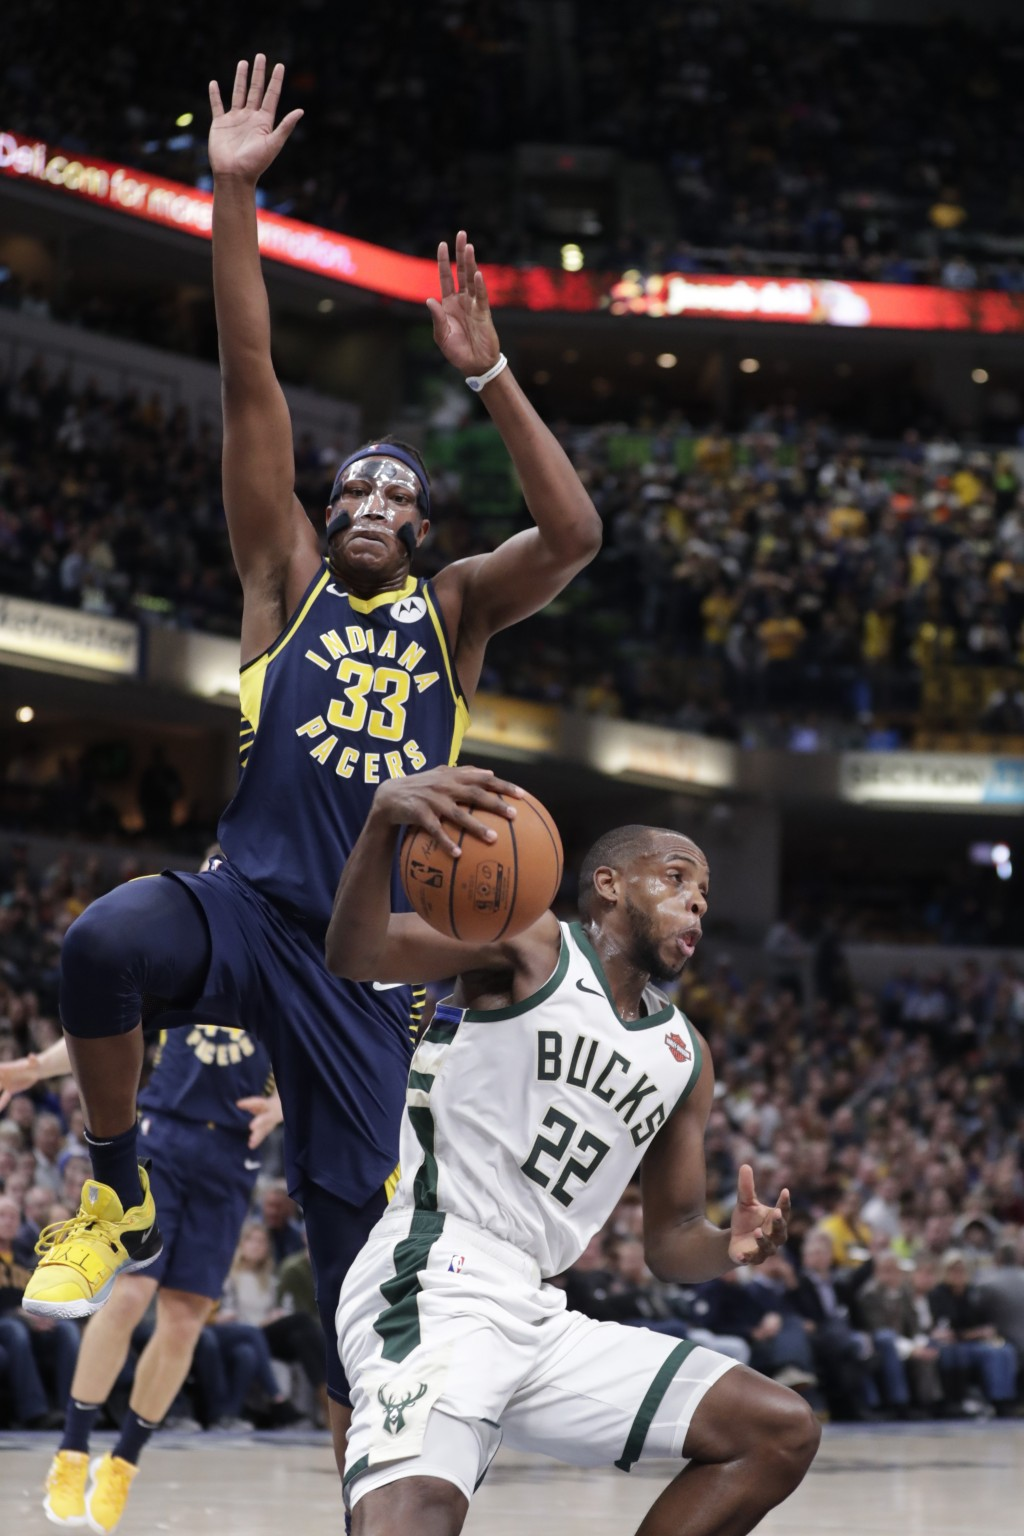 Milwaukee Bucks forward Khris Middleton (22) fakes under Indiana Pacers center Myles Turner (33) during the second half of an NBA basketball game in I...